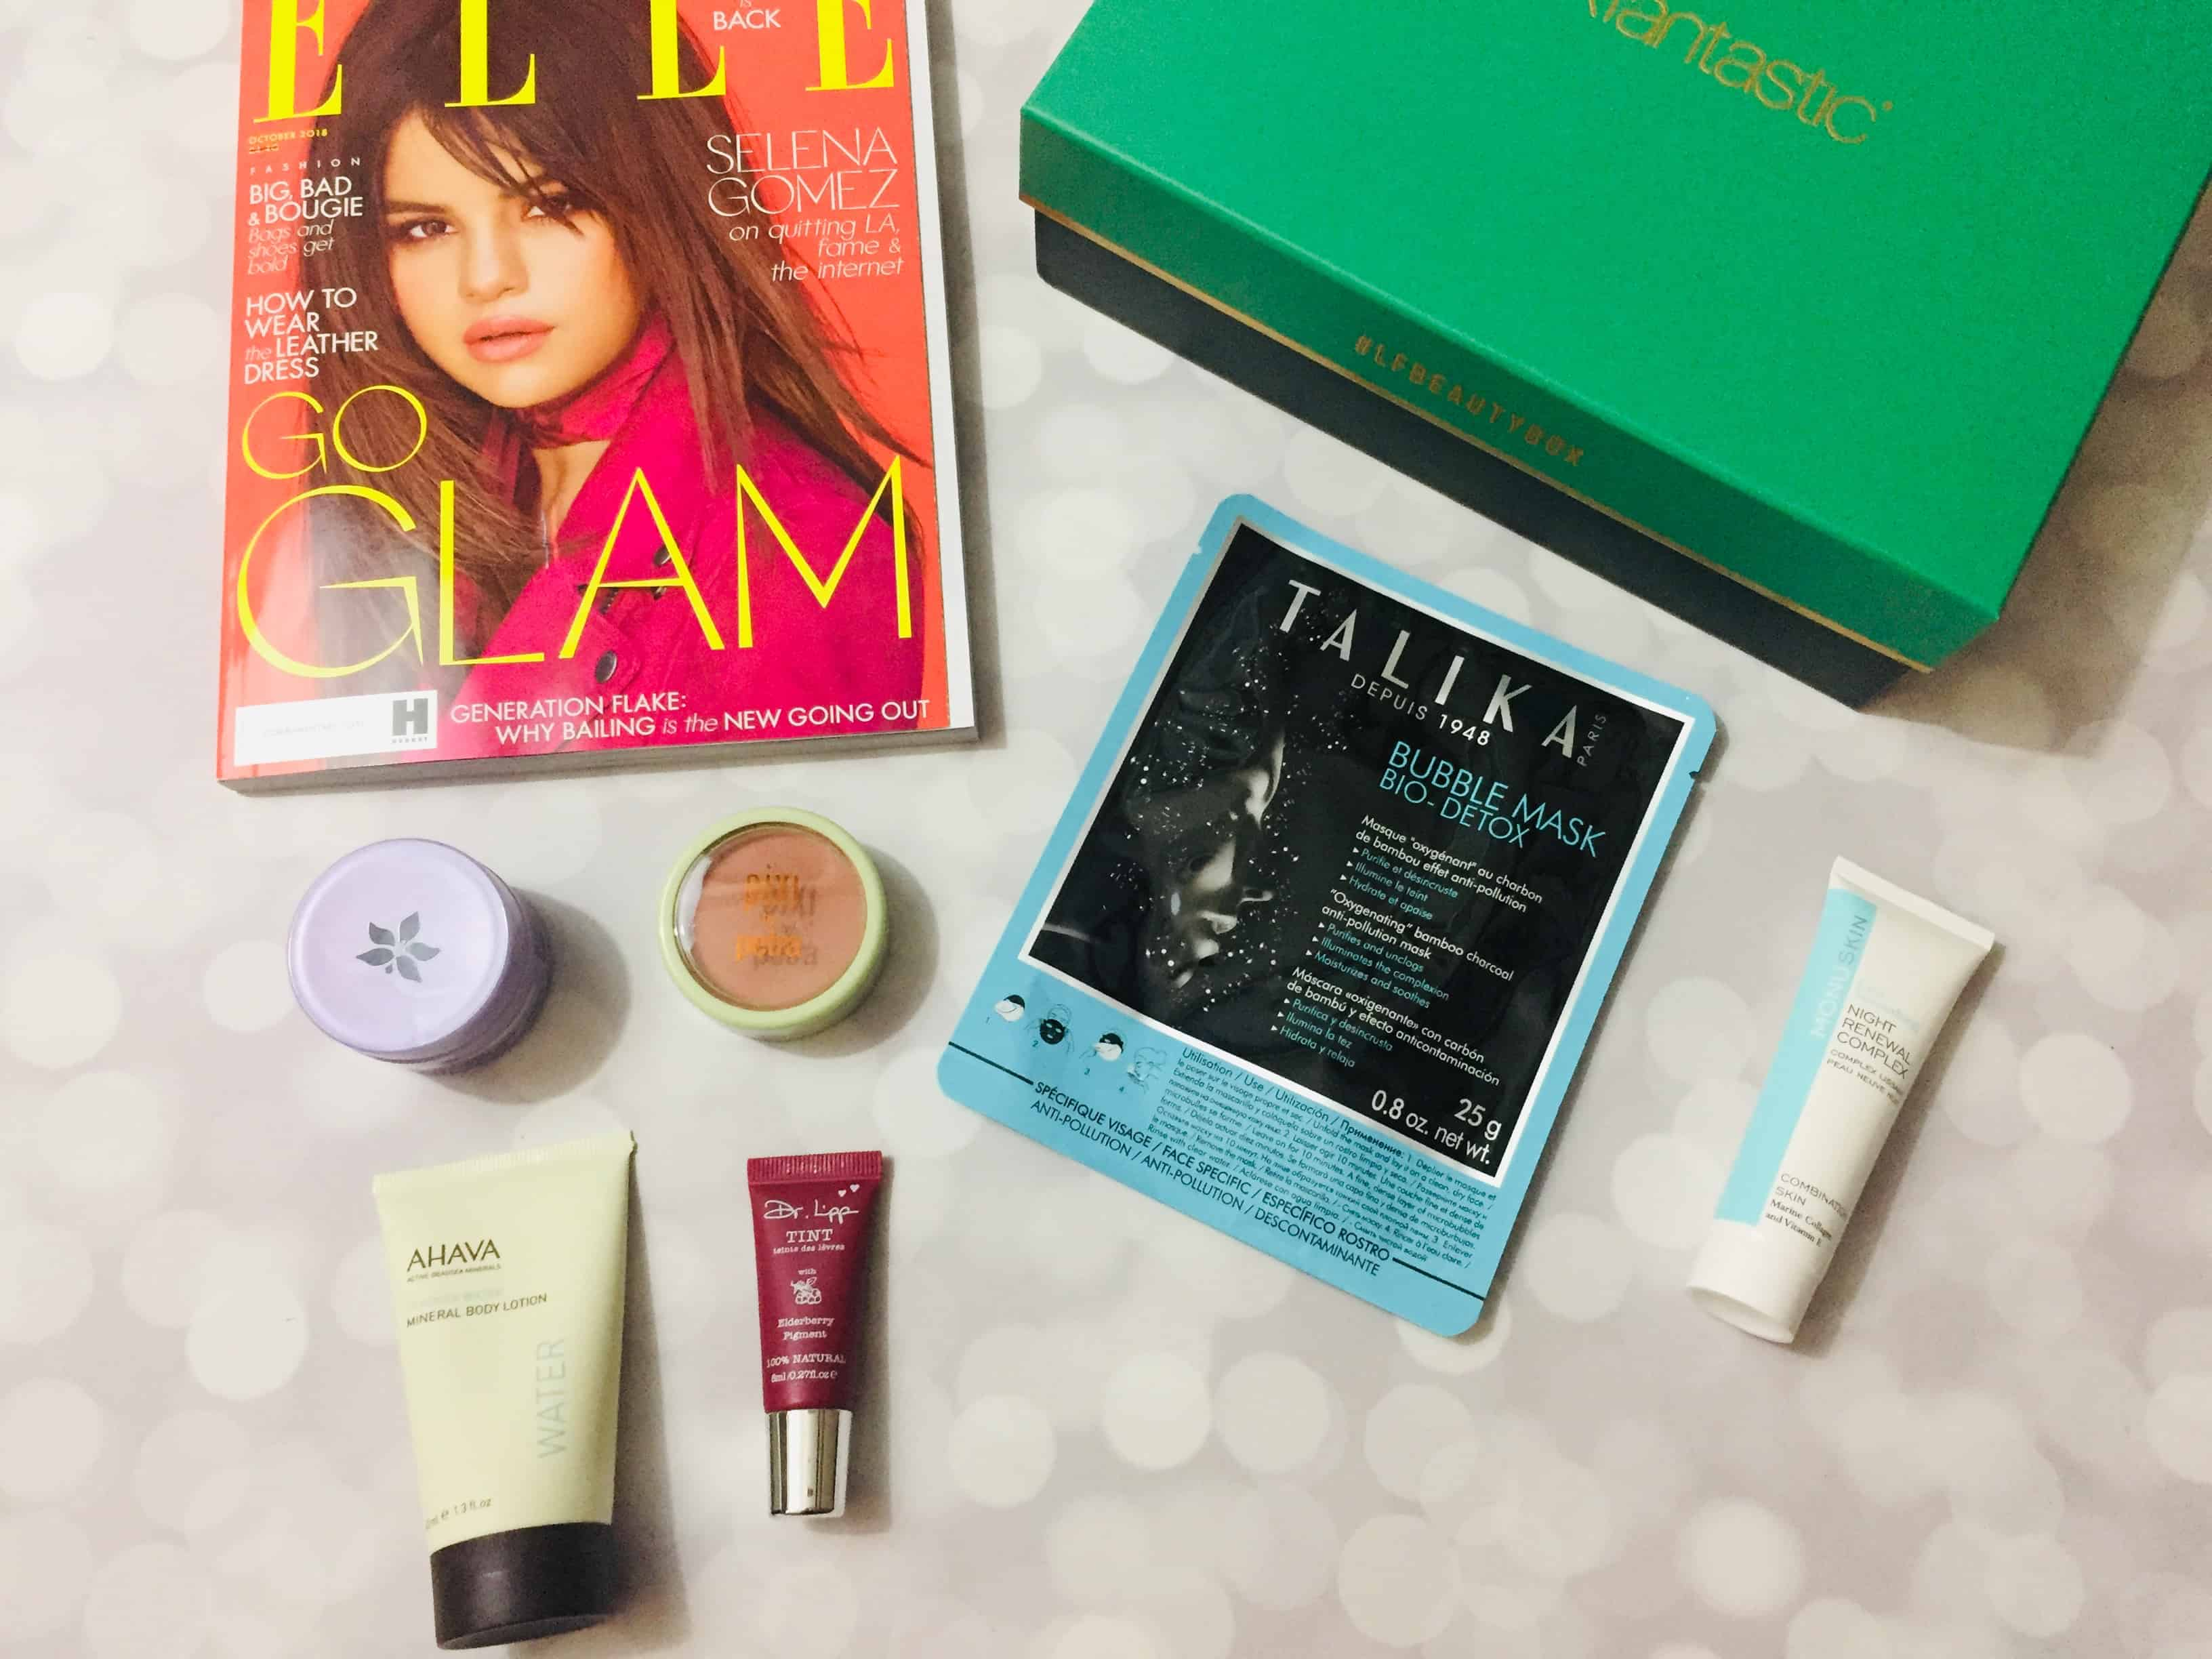 lookfantastic Beauty Box October 2018 Subscription Box Review *